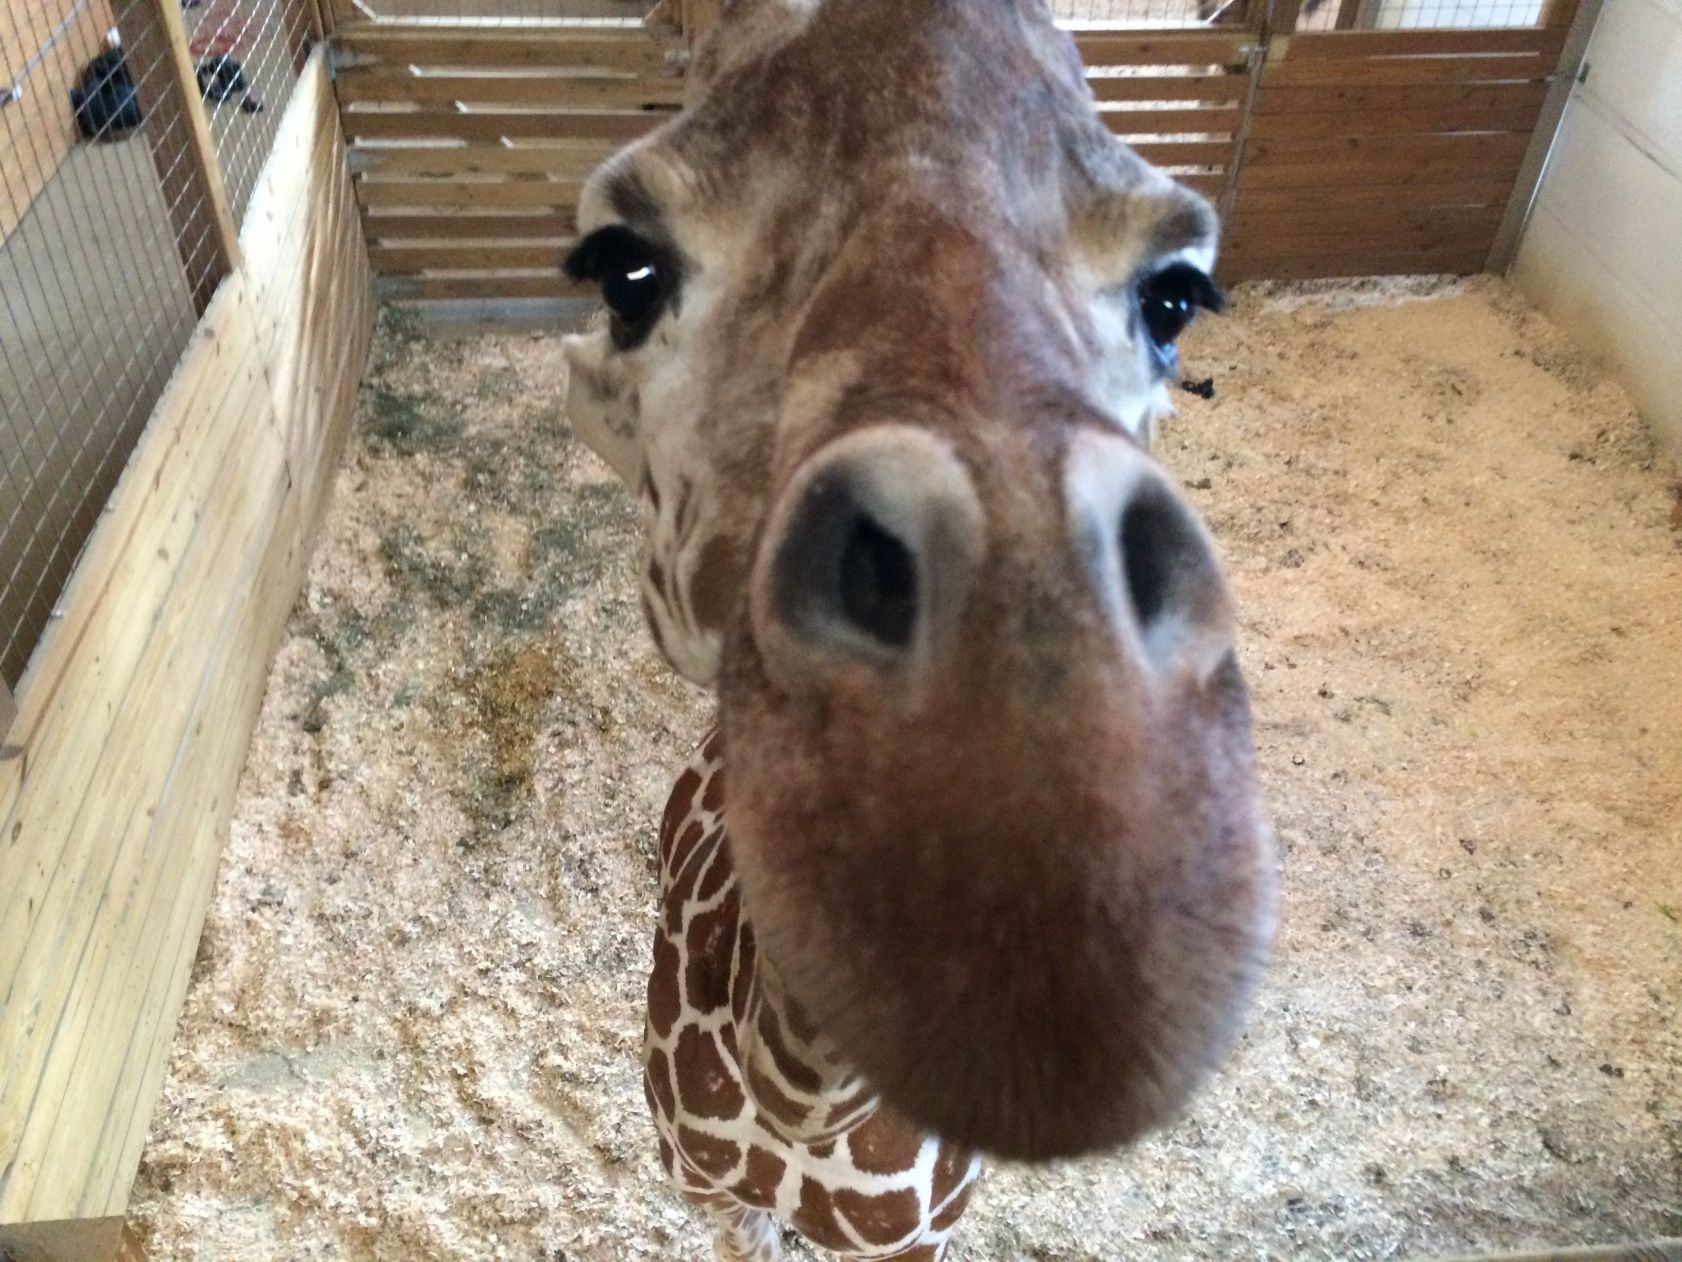 April the giraffe live cam youtube - April The Giraffe She S Adorable I Ll Admit It I Ve Become An April Addict Starting To Wonder If She S Ever Going Going To Give Birth To Her Calf